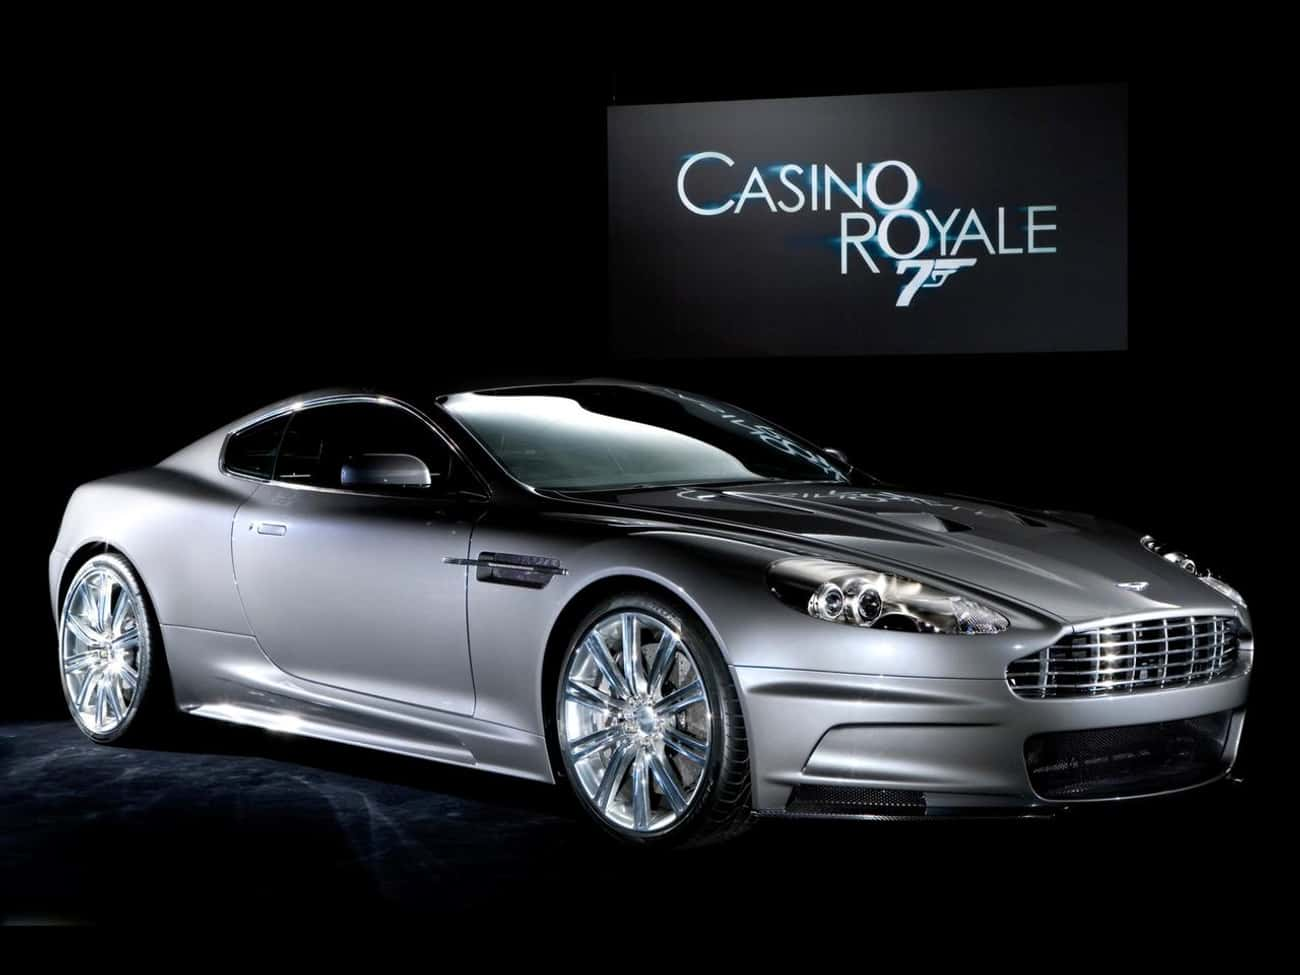 Aston Martin DBS is listed (or ranked) 4 on the list The Best James Bond Cars